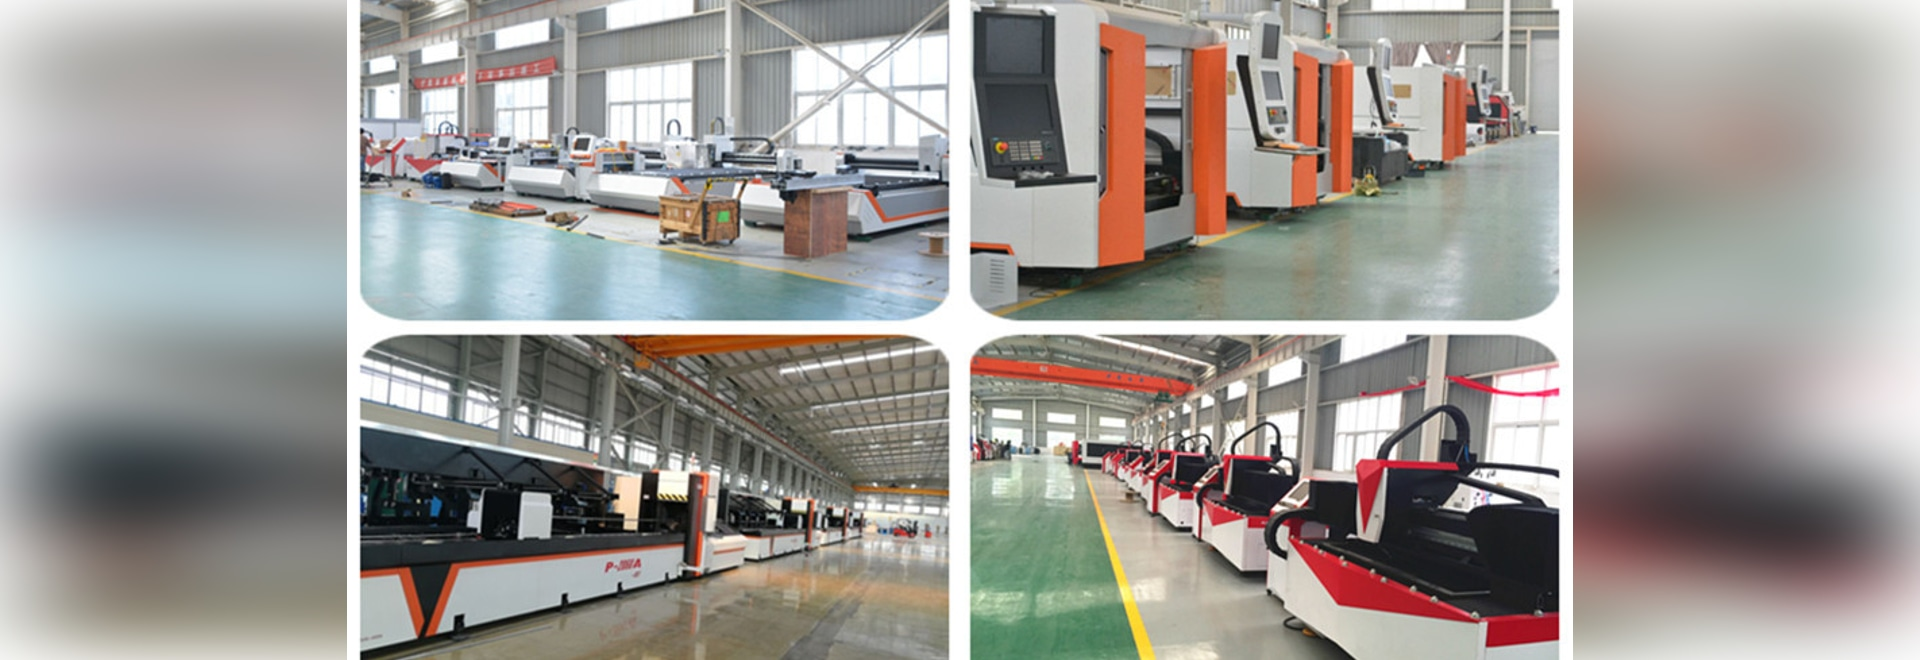 Fiber Laser Metal Sheet And Tube Cutting Machine Production Line In Our Workshop